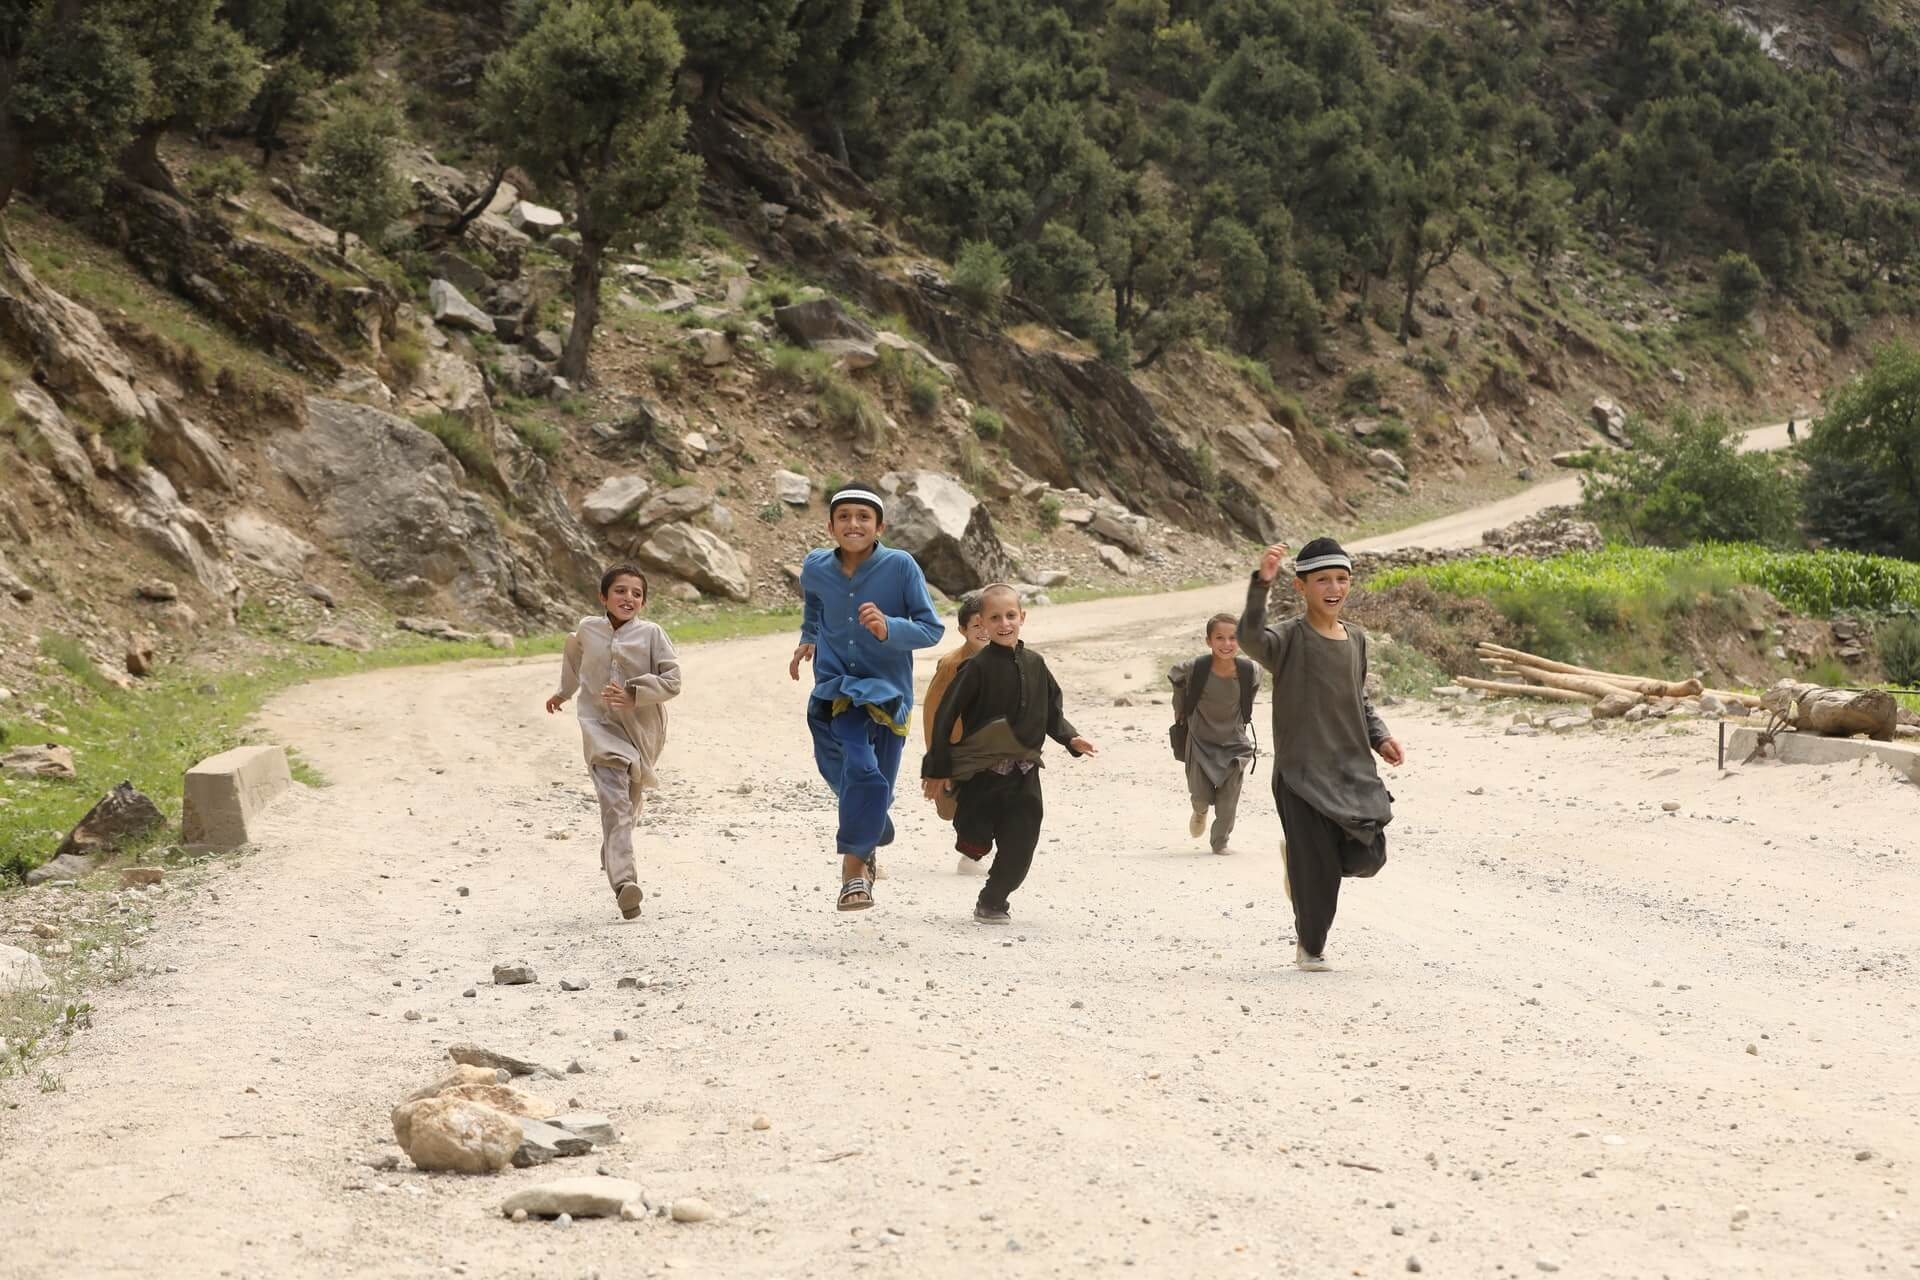 Some local kids in Nuristan - a province of Afganhistan.